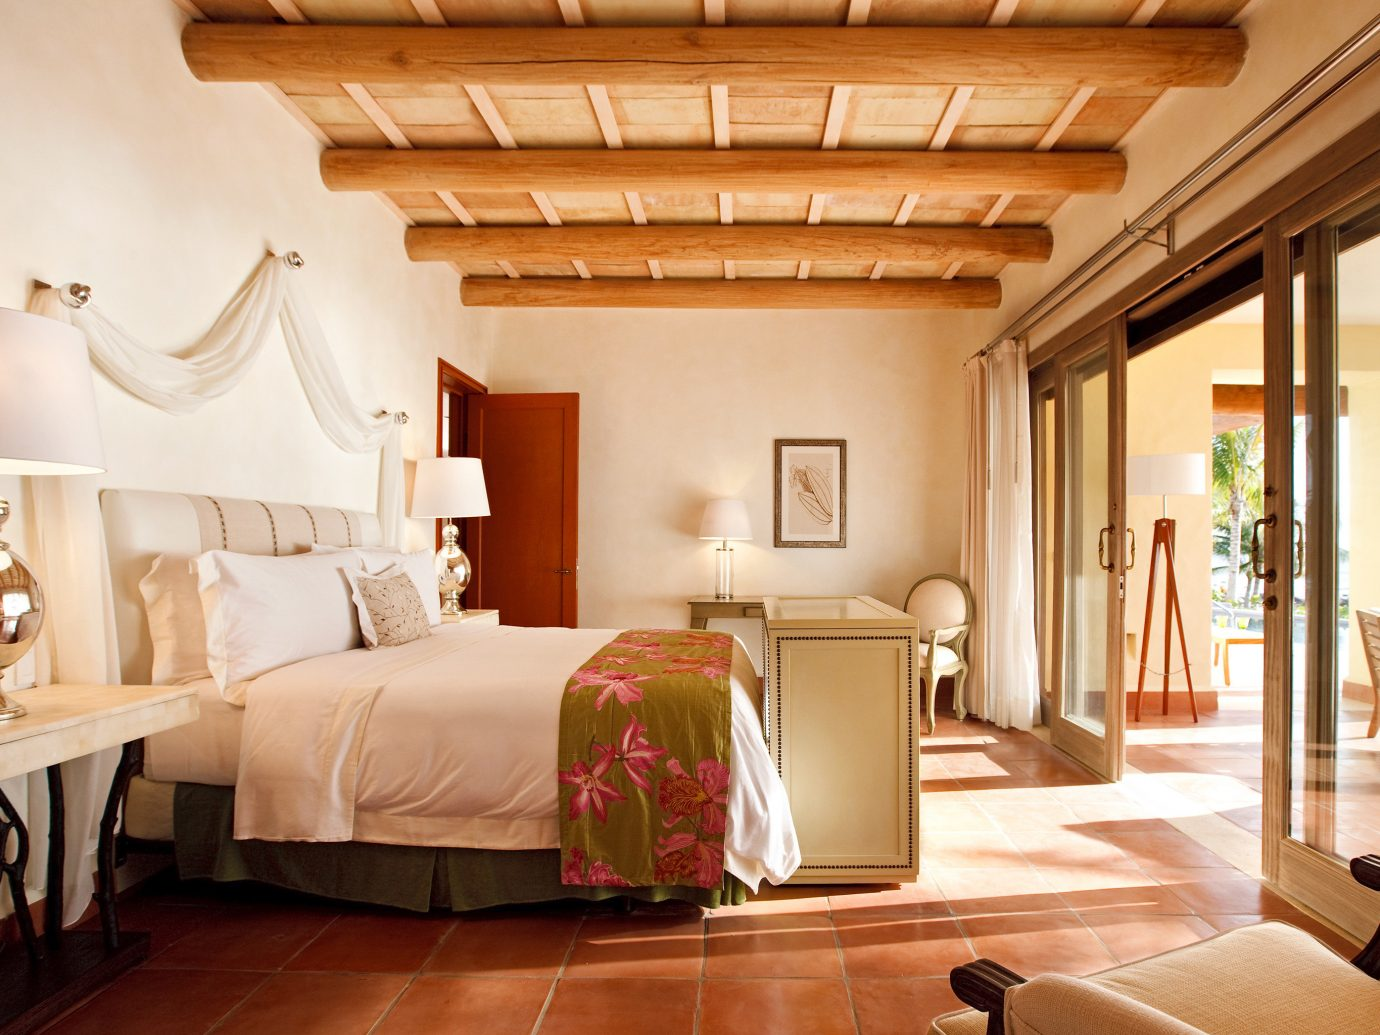 Bedroom at St. Regis Punta Mita